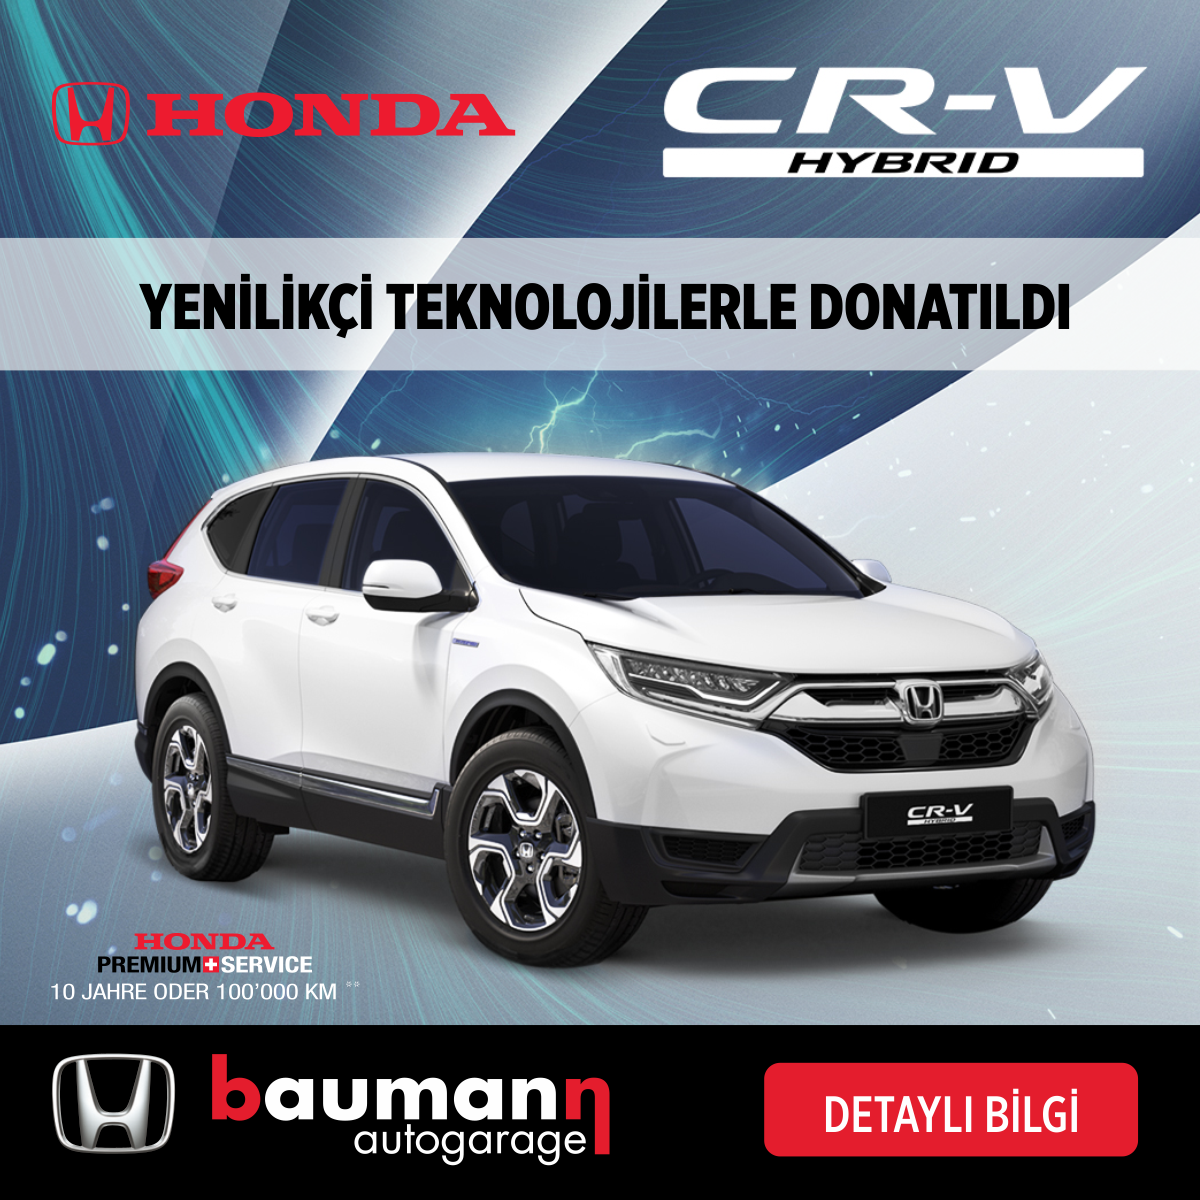 HONDA-BANNER-REVIZE.png